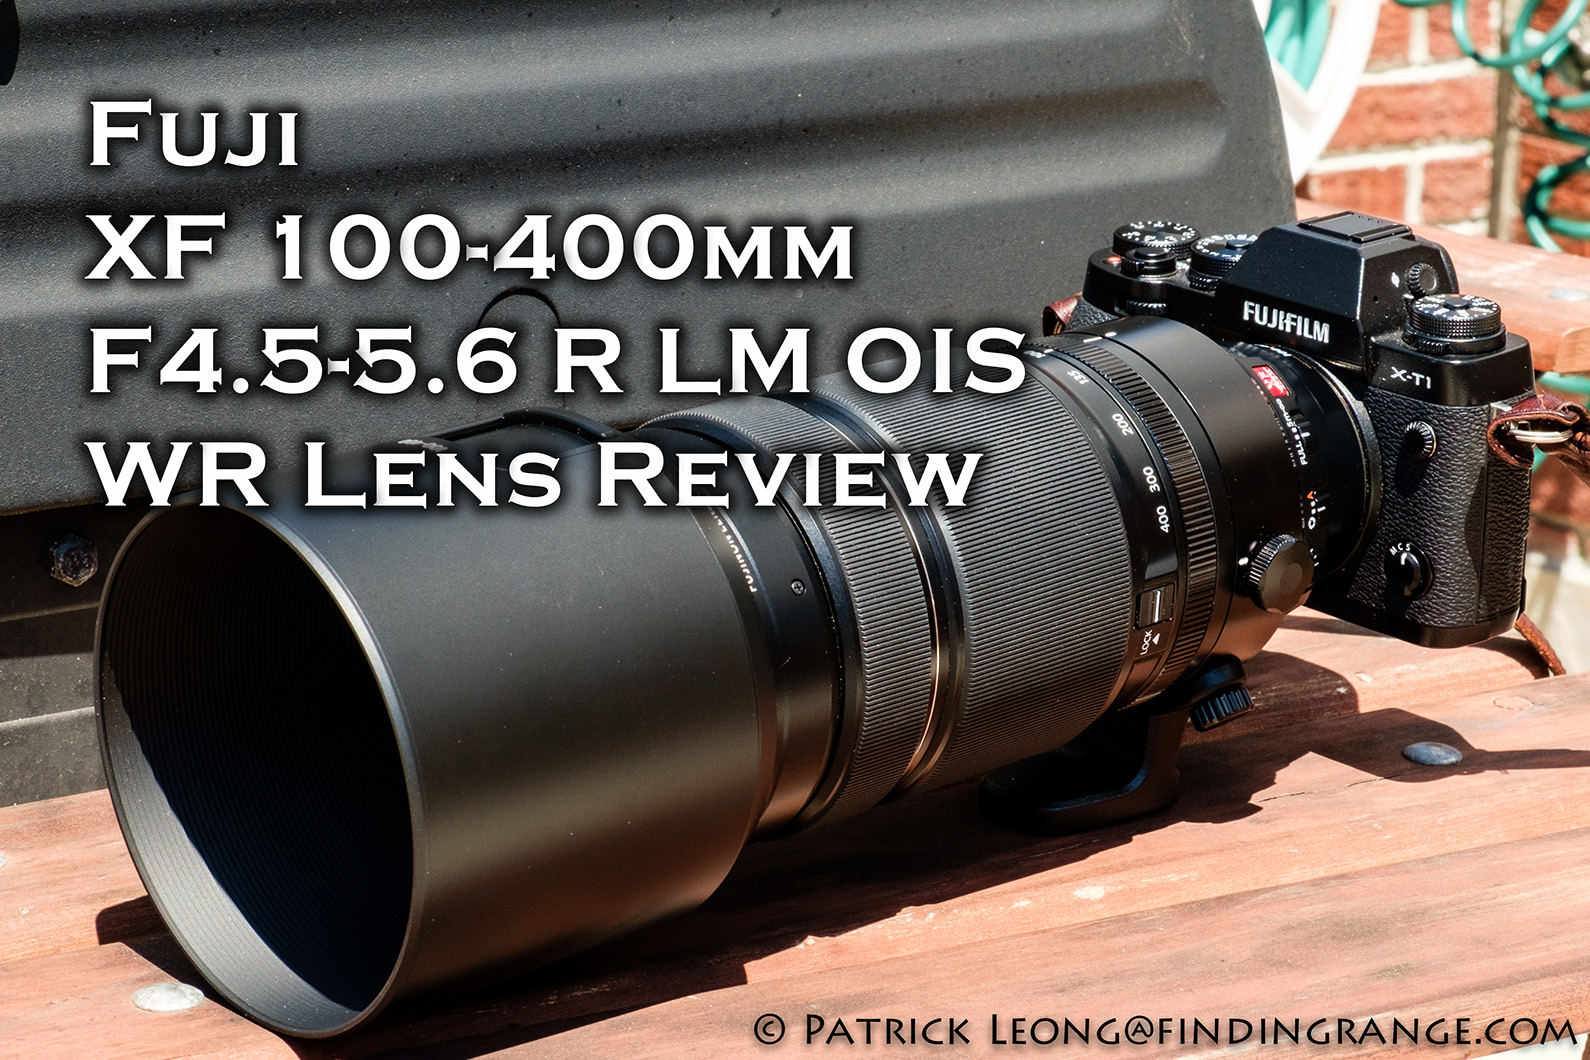 Fuji-X-T1-XF-100-400mm-f4.5-5.6-R-LM-OIS-WR-Lens-Review-1